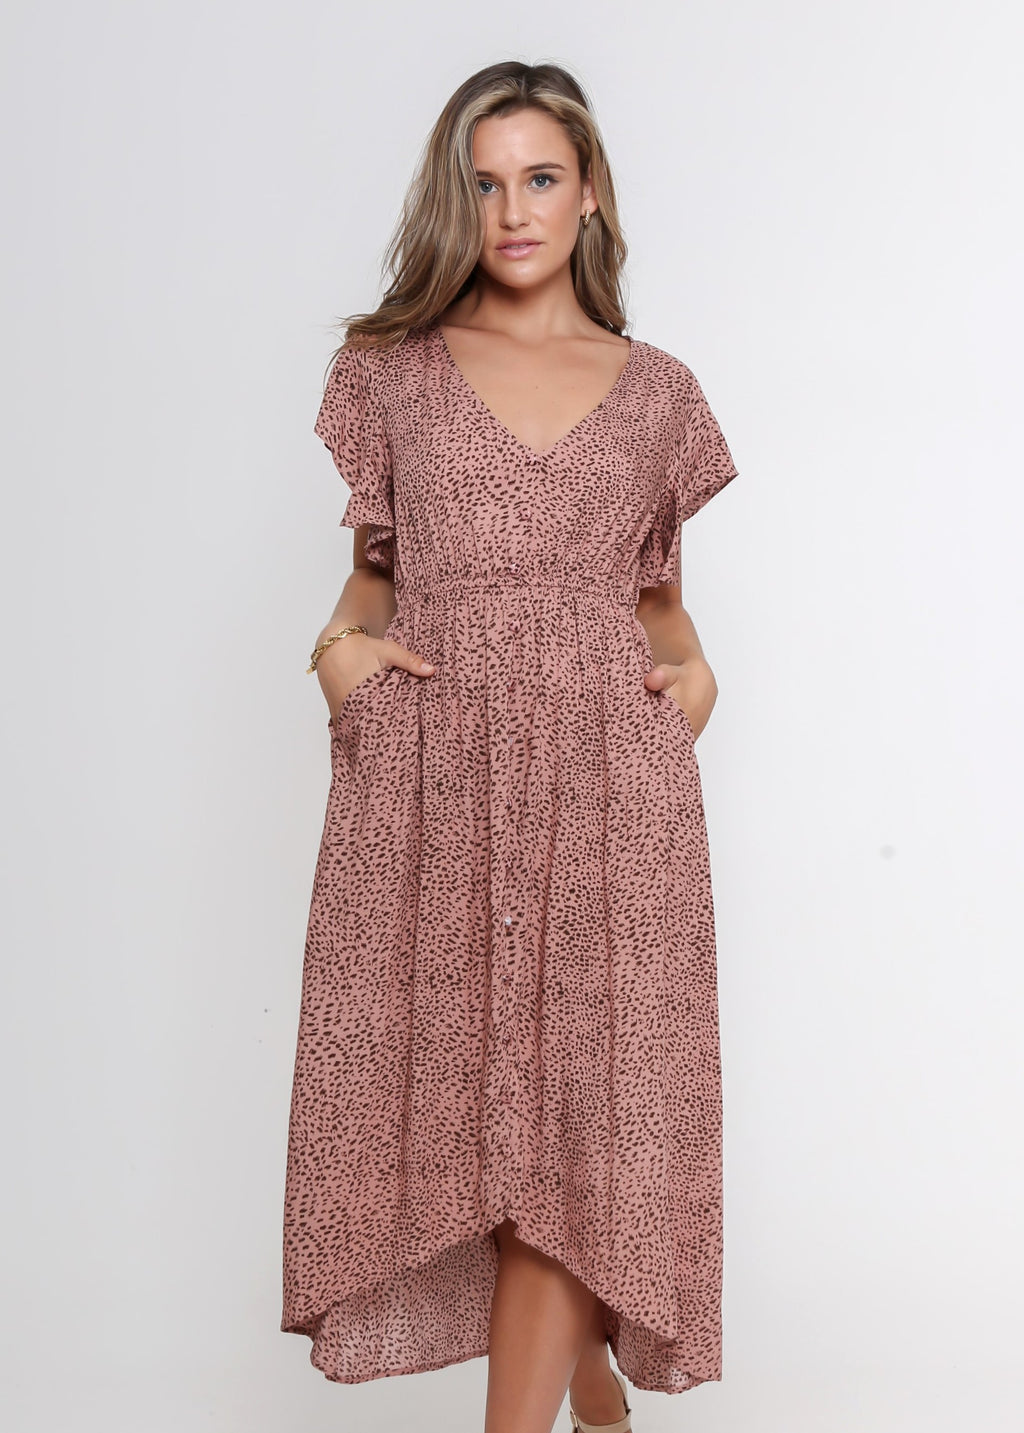 NEW - JEMIMA DRESS - BLUSH LEOPARD